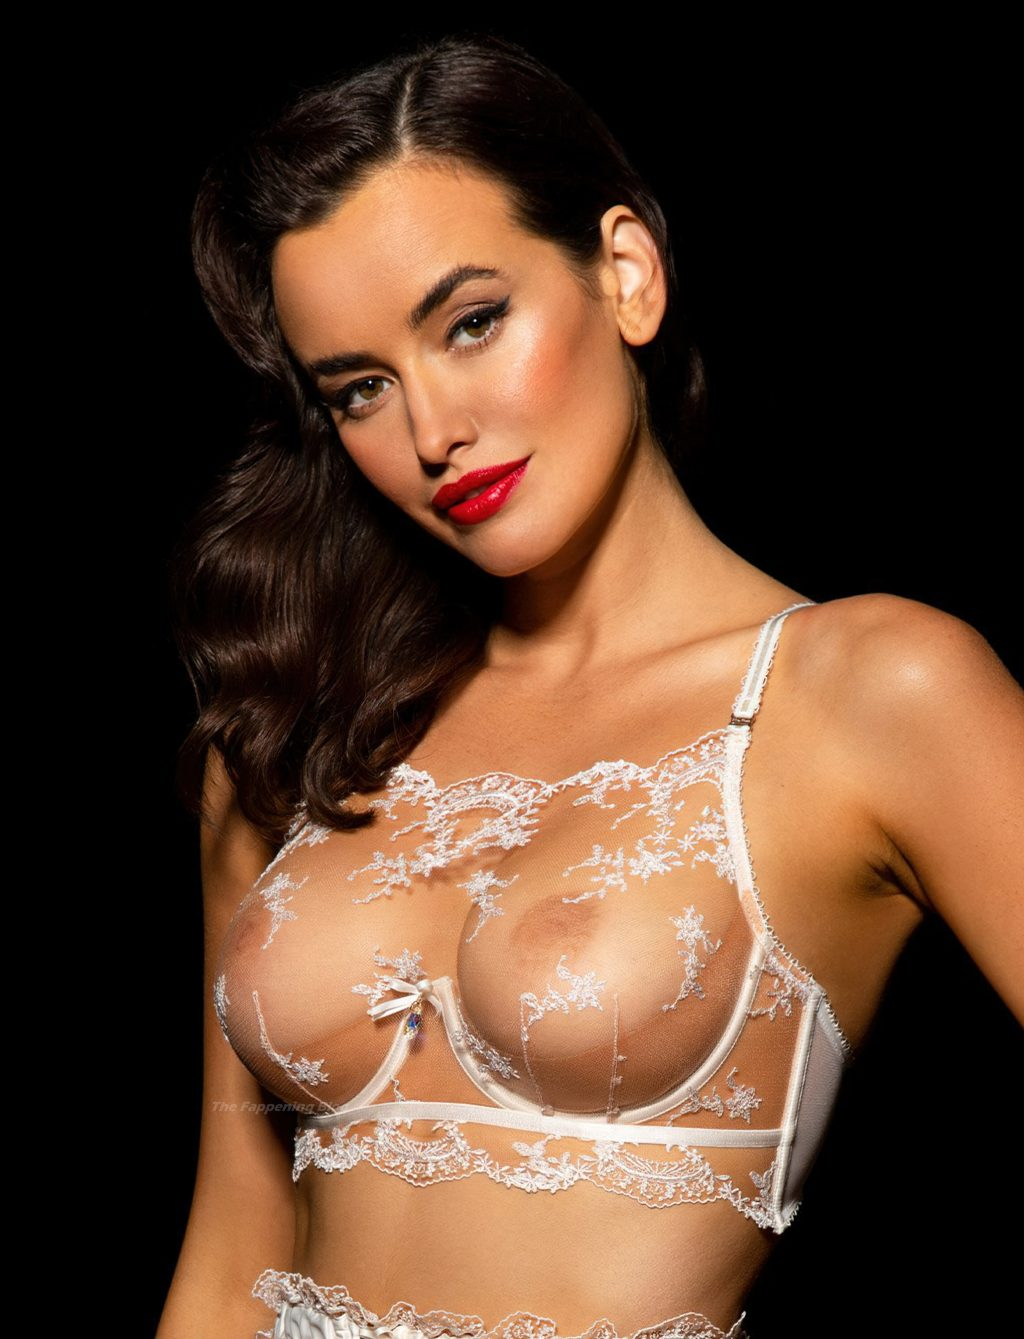 Sarah Stephens Shows Her Nude Tits As She Poses in Lace Lingerie (29 Photos)